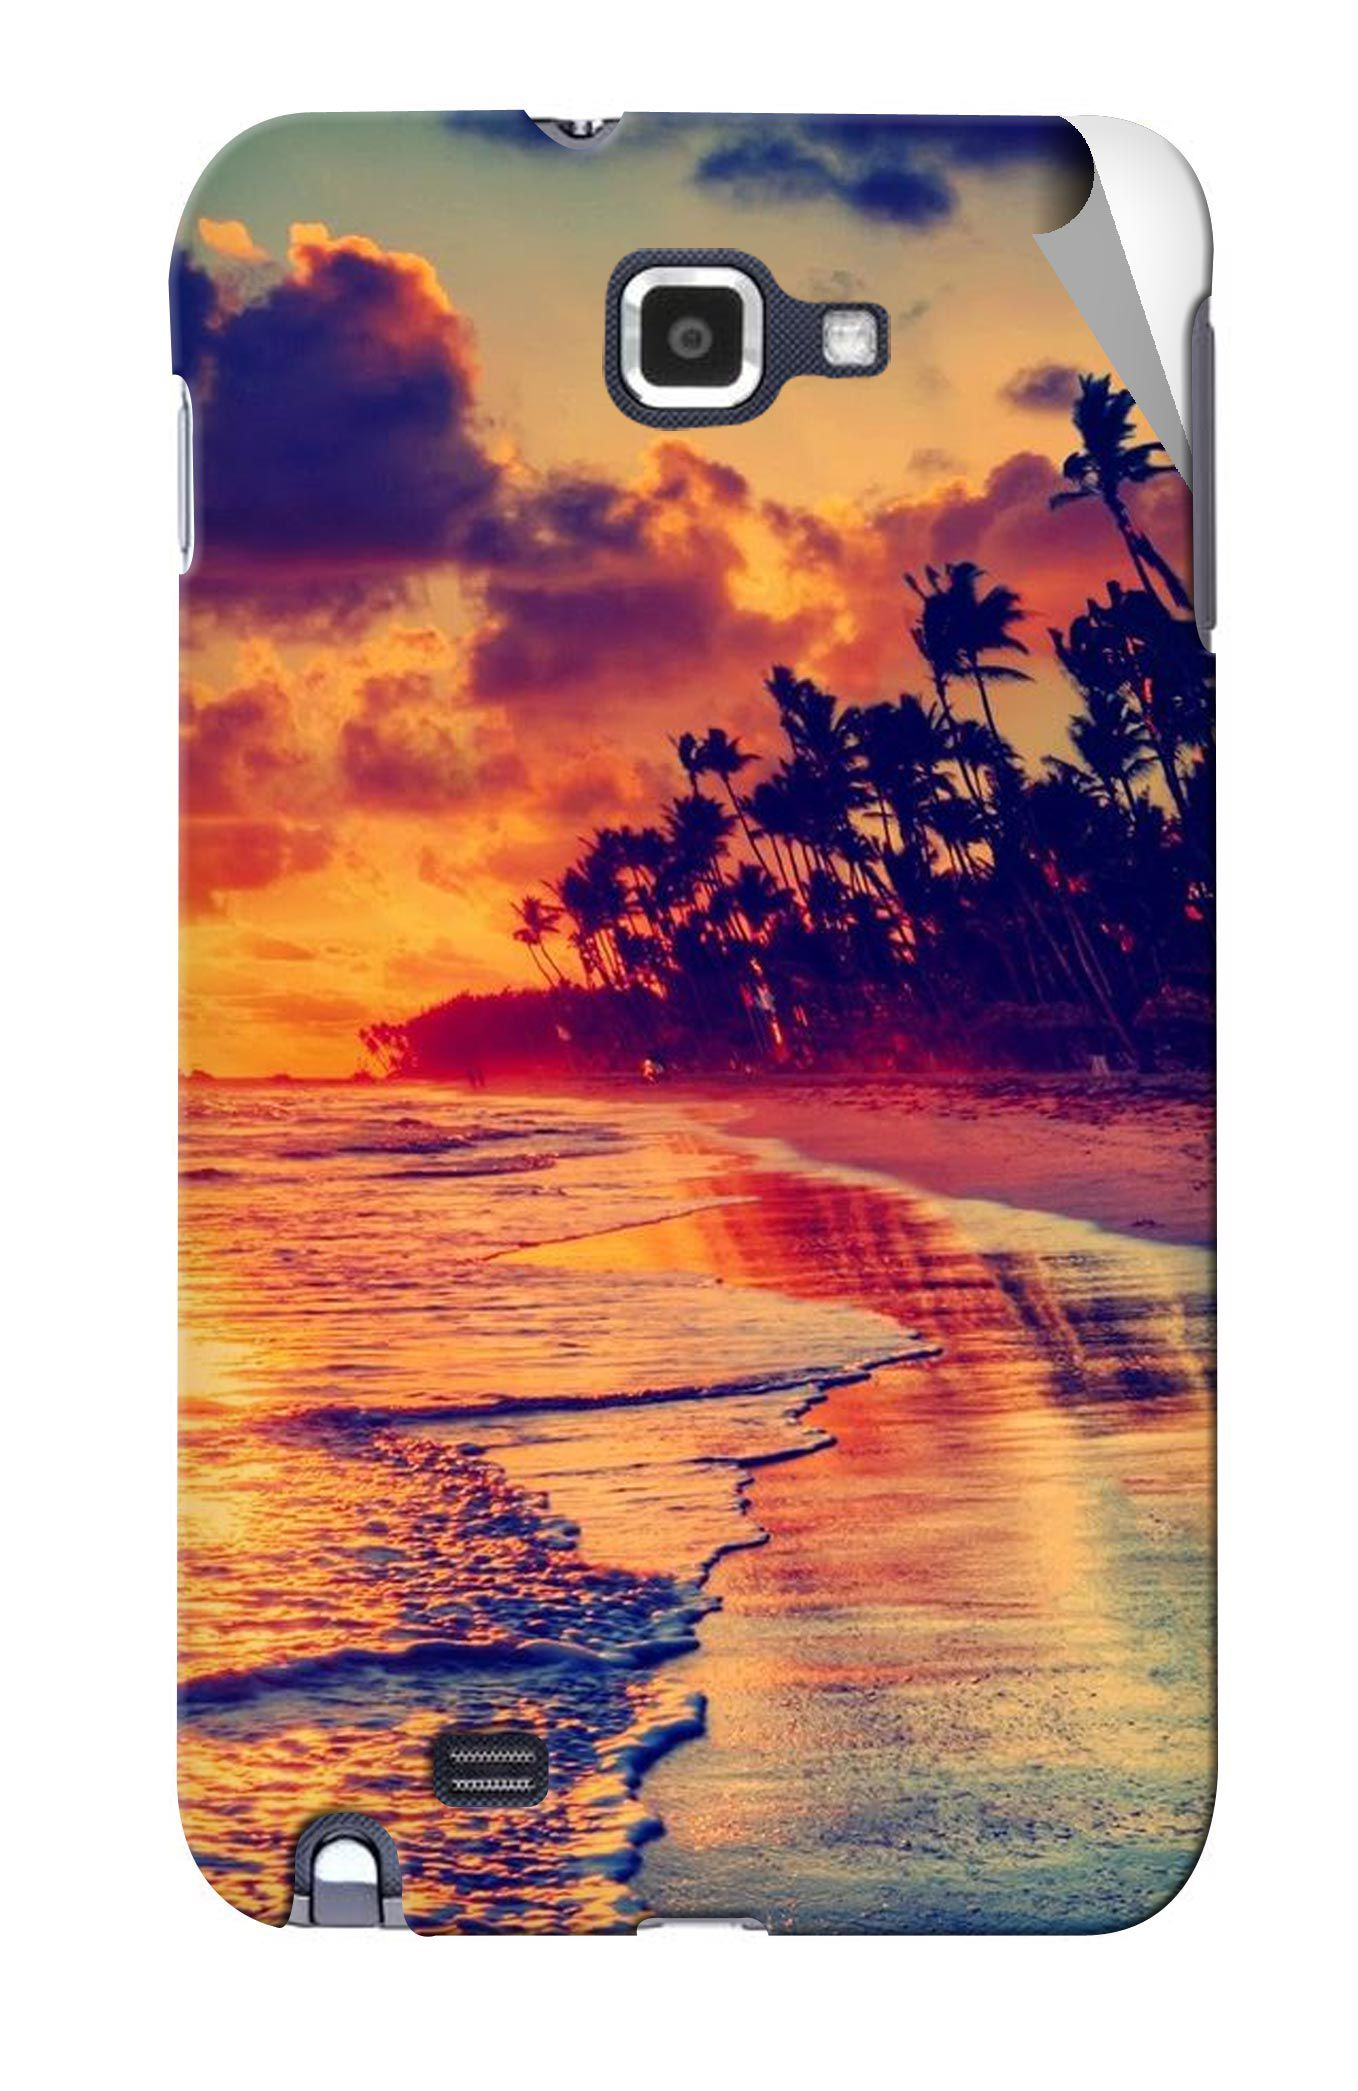 G.store Designer Skin Sticker For Samsung Galaxy Note 1